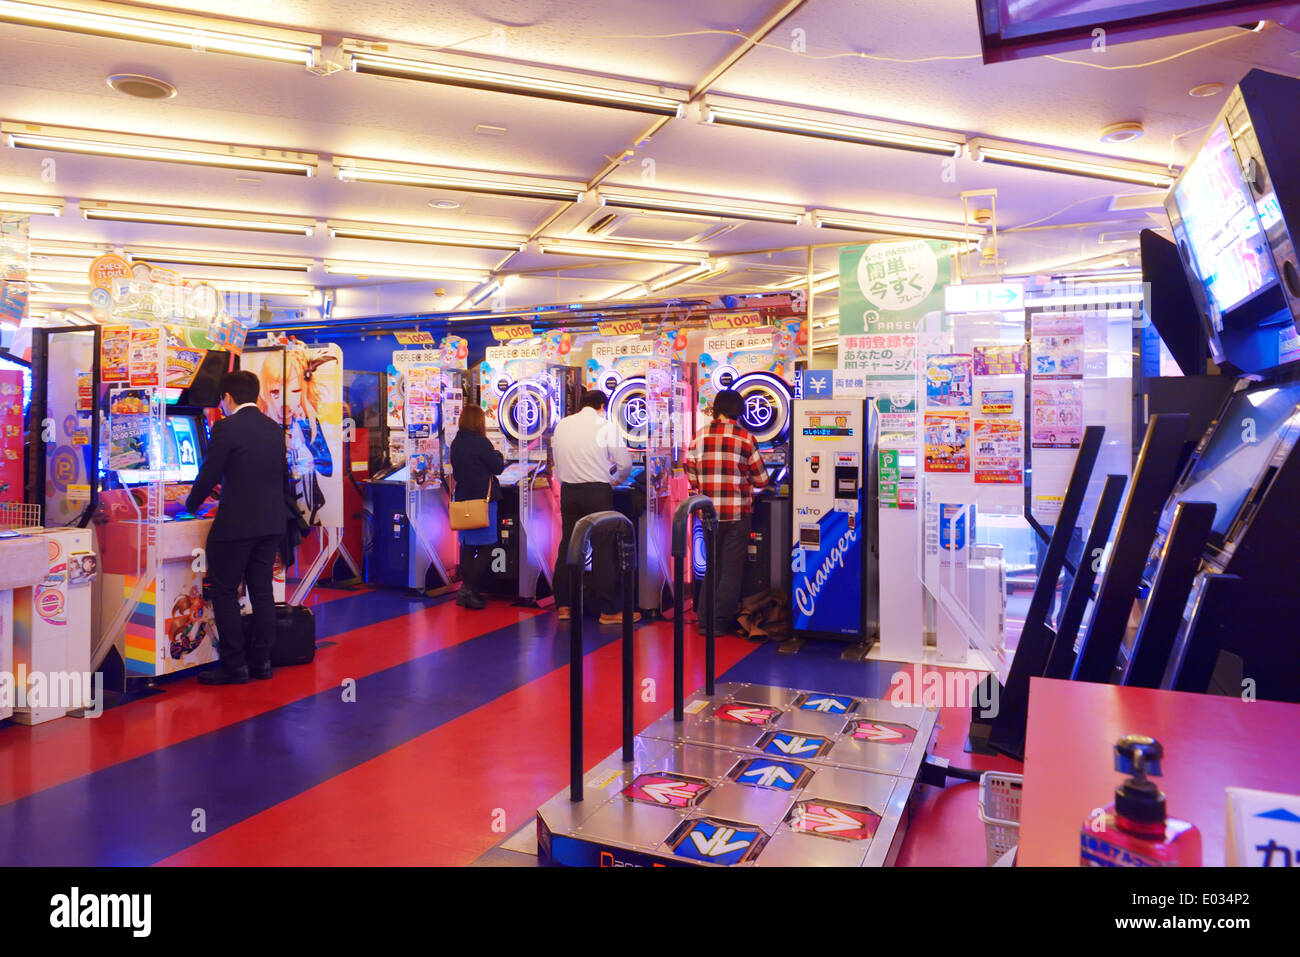 People playing slot machines at an arcade in Tokyo, Japan - Stock Image